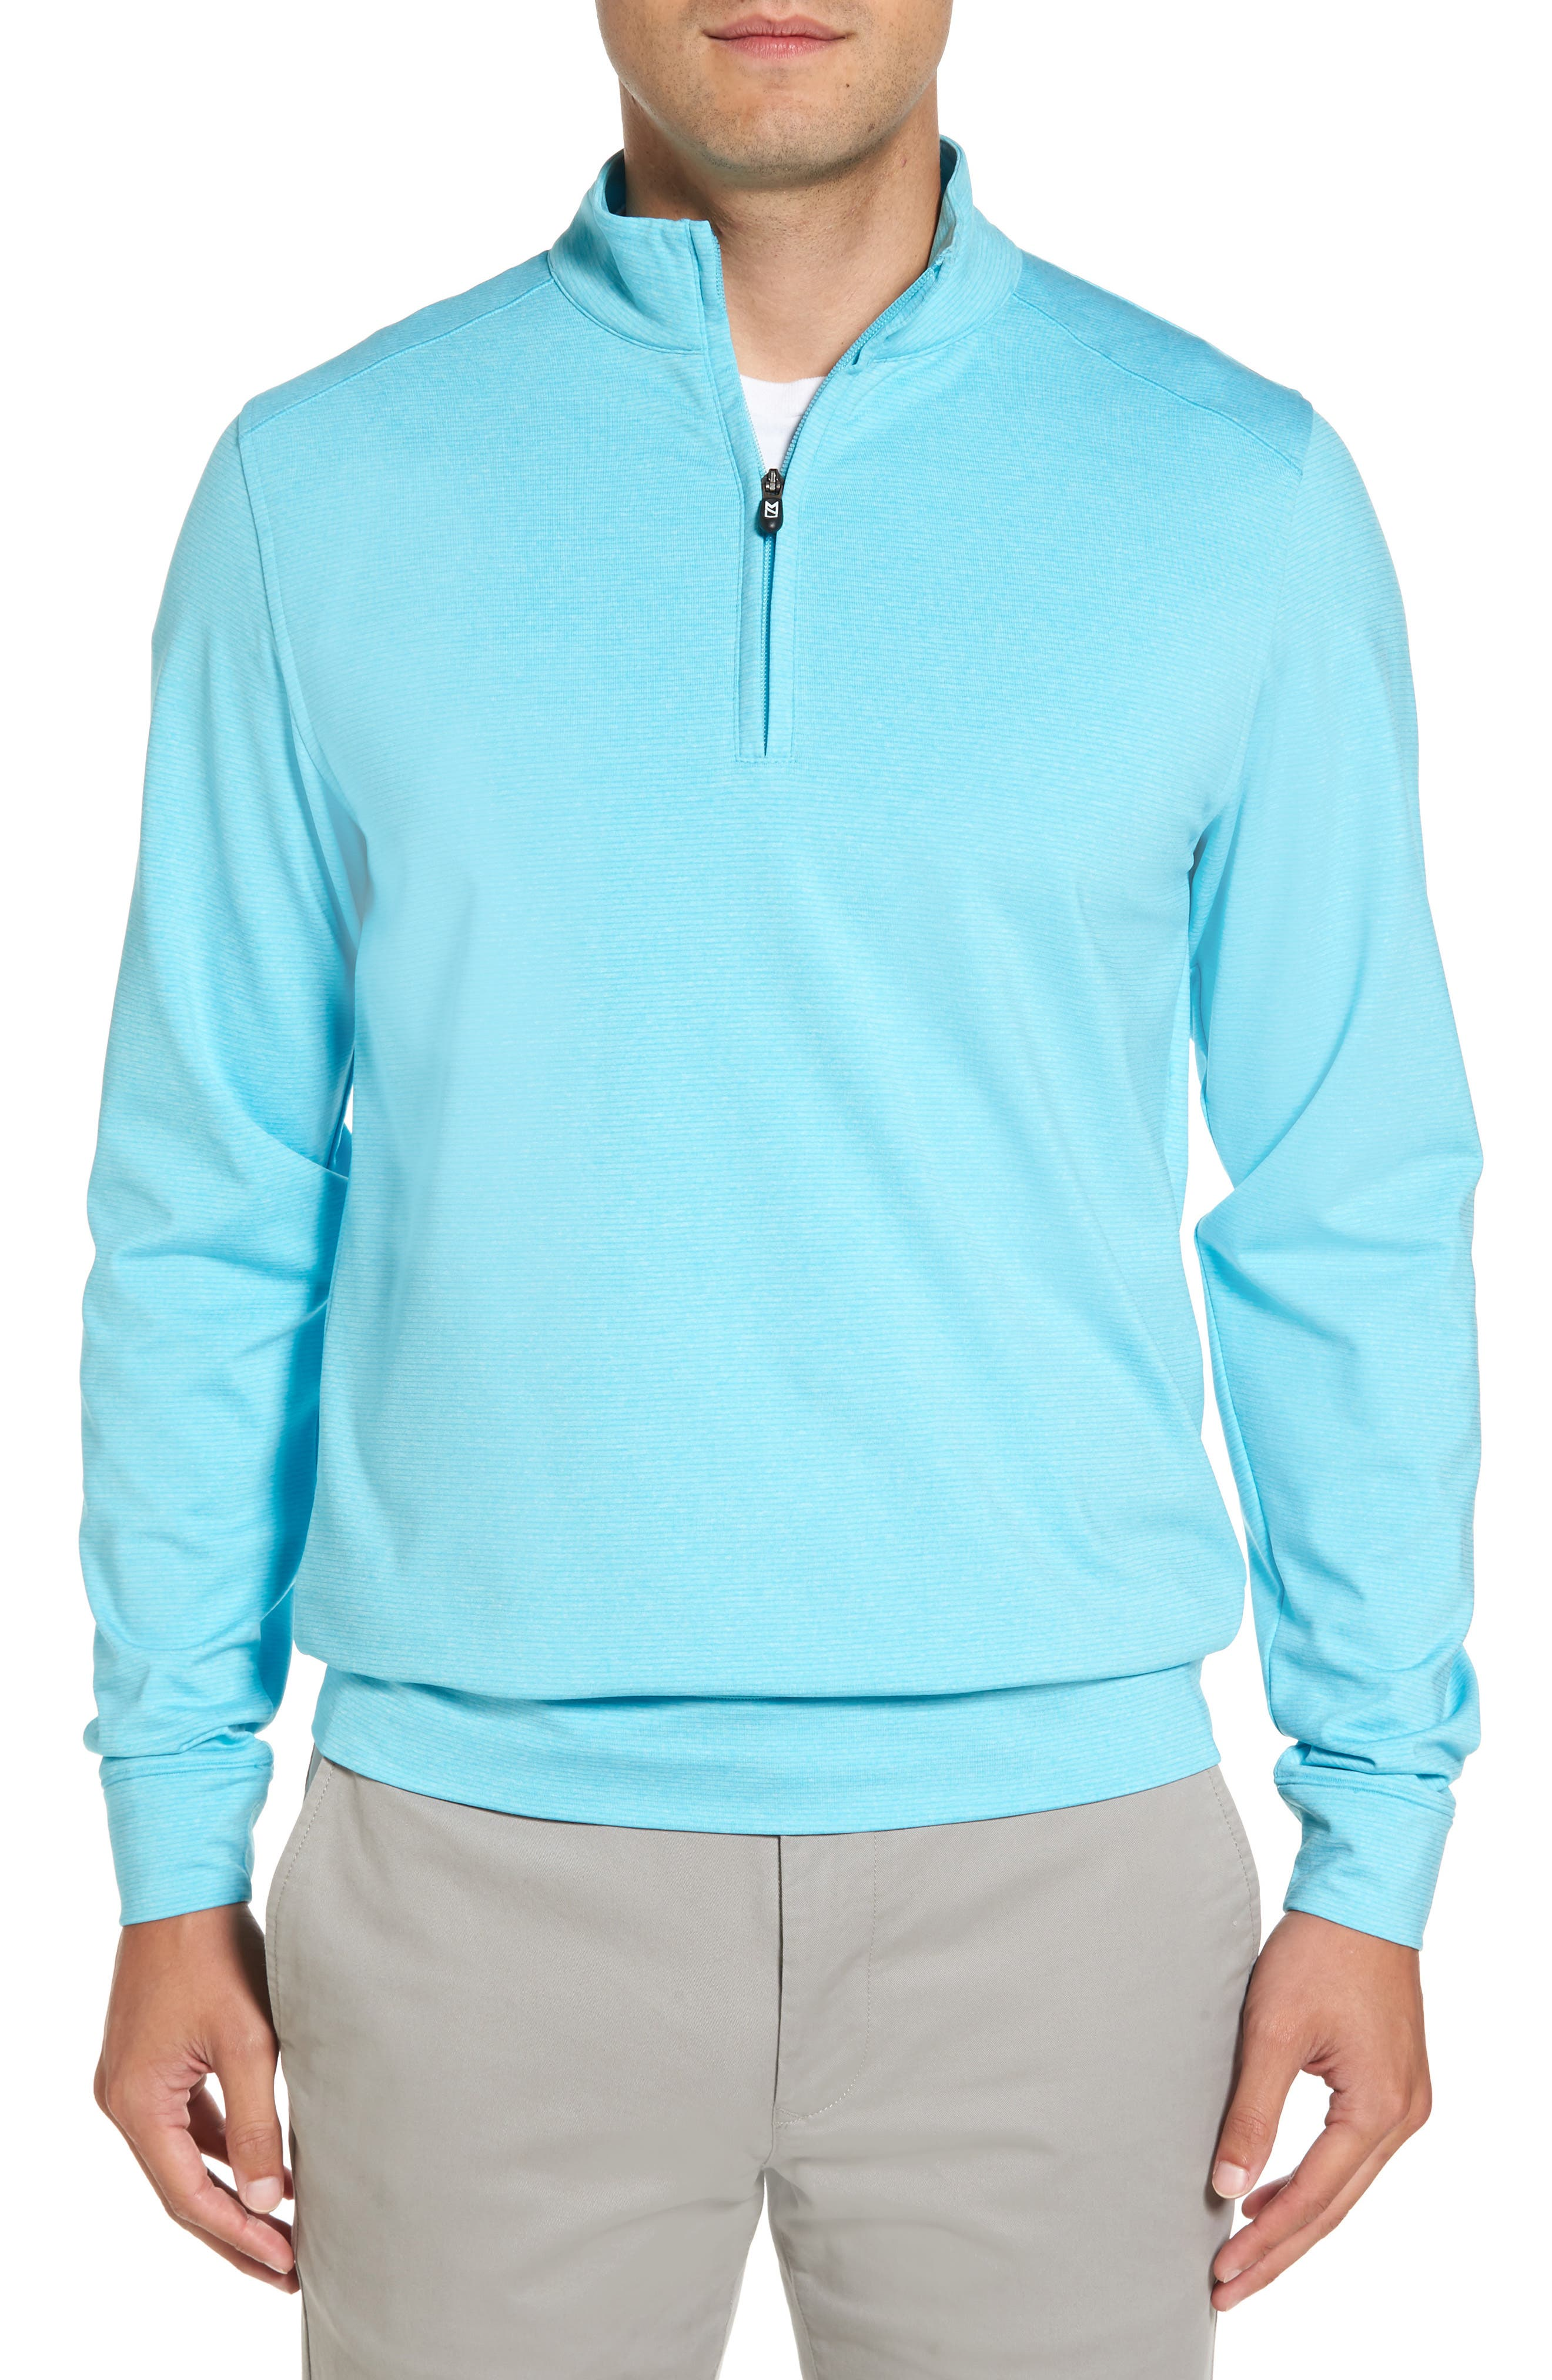 Cutter & Buck 'Shoreline' Quarter Zip Pullover